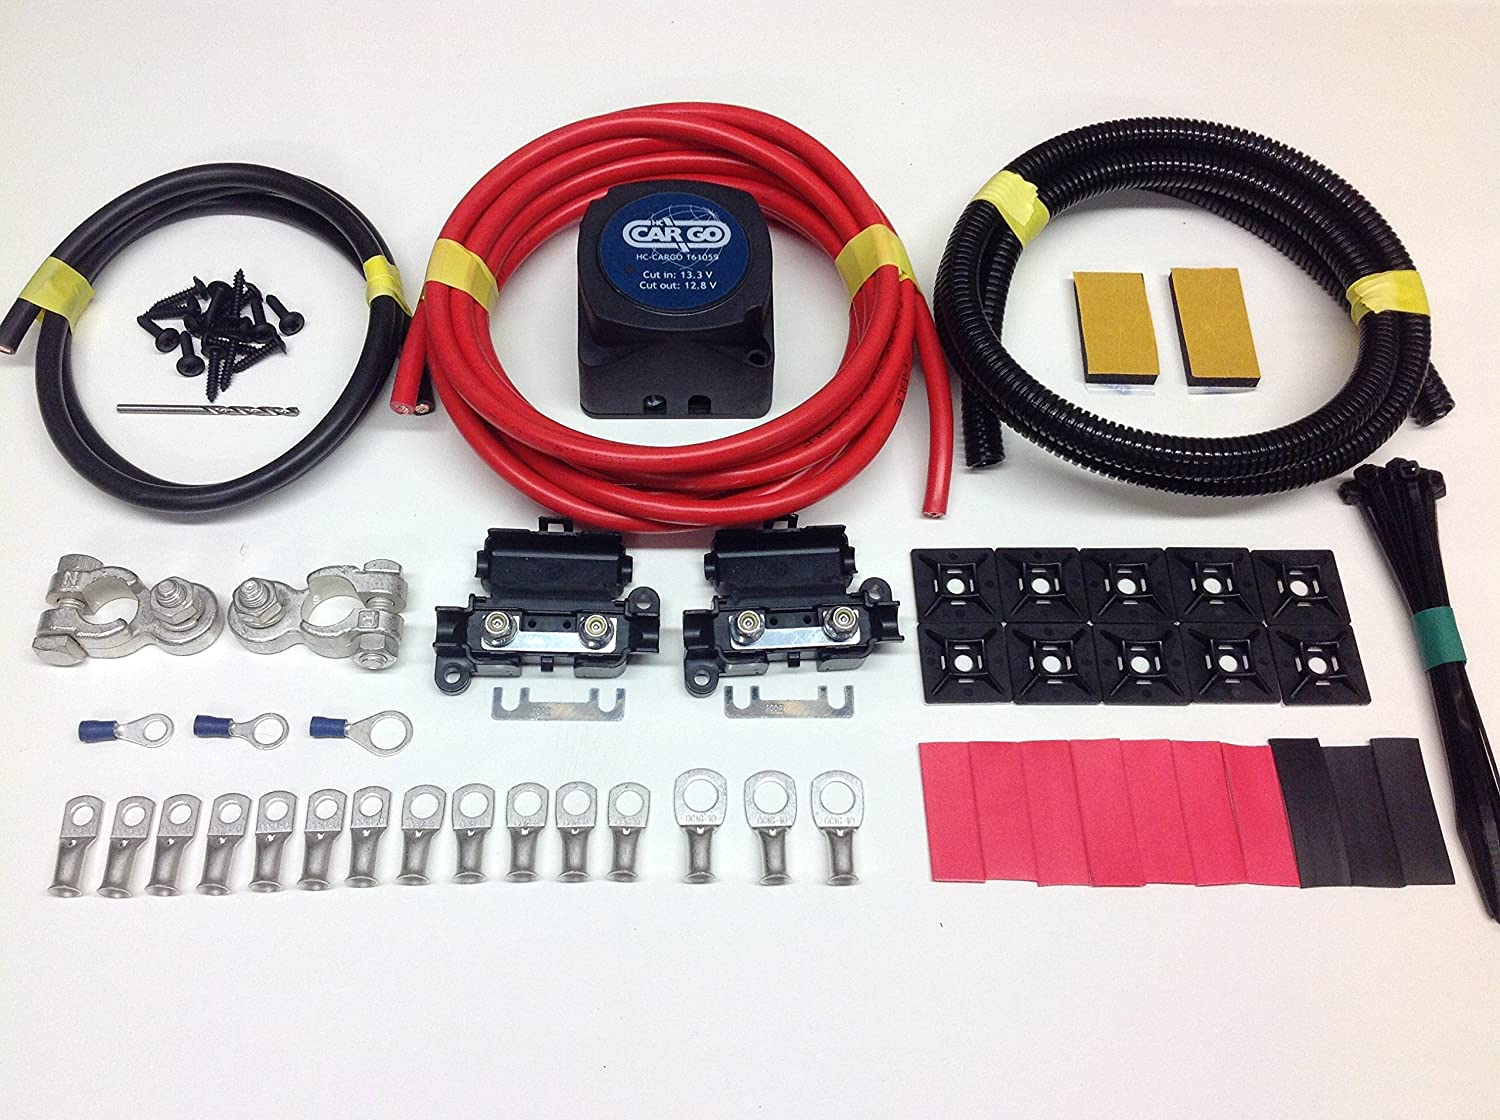 9MTR PROFESSIONAL CARGO SPLIT CHARGE KIT 12V 140A AMP RELAY 110AMP CABLE SCKC319 Simply Split Charge